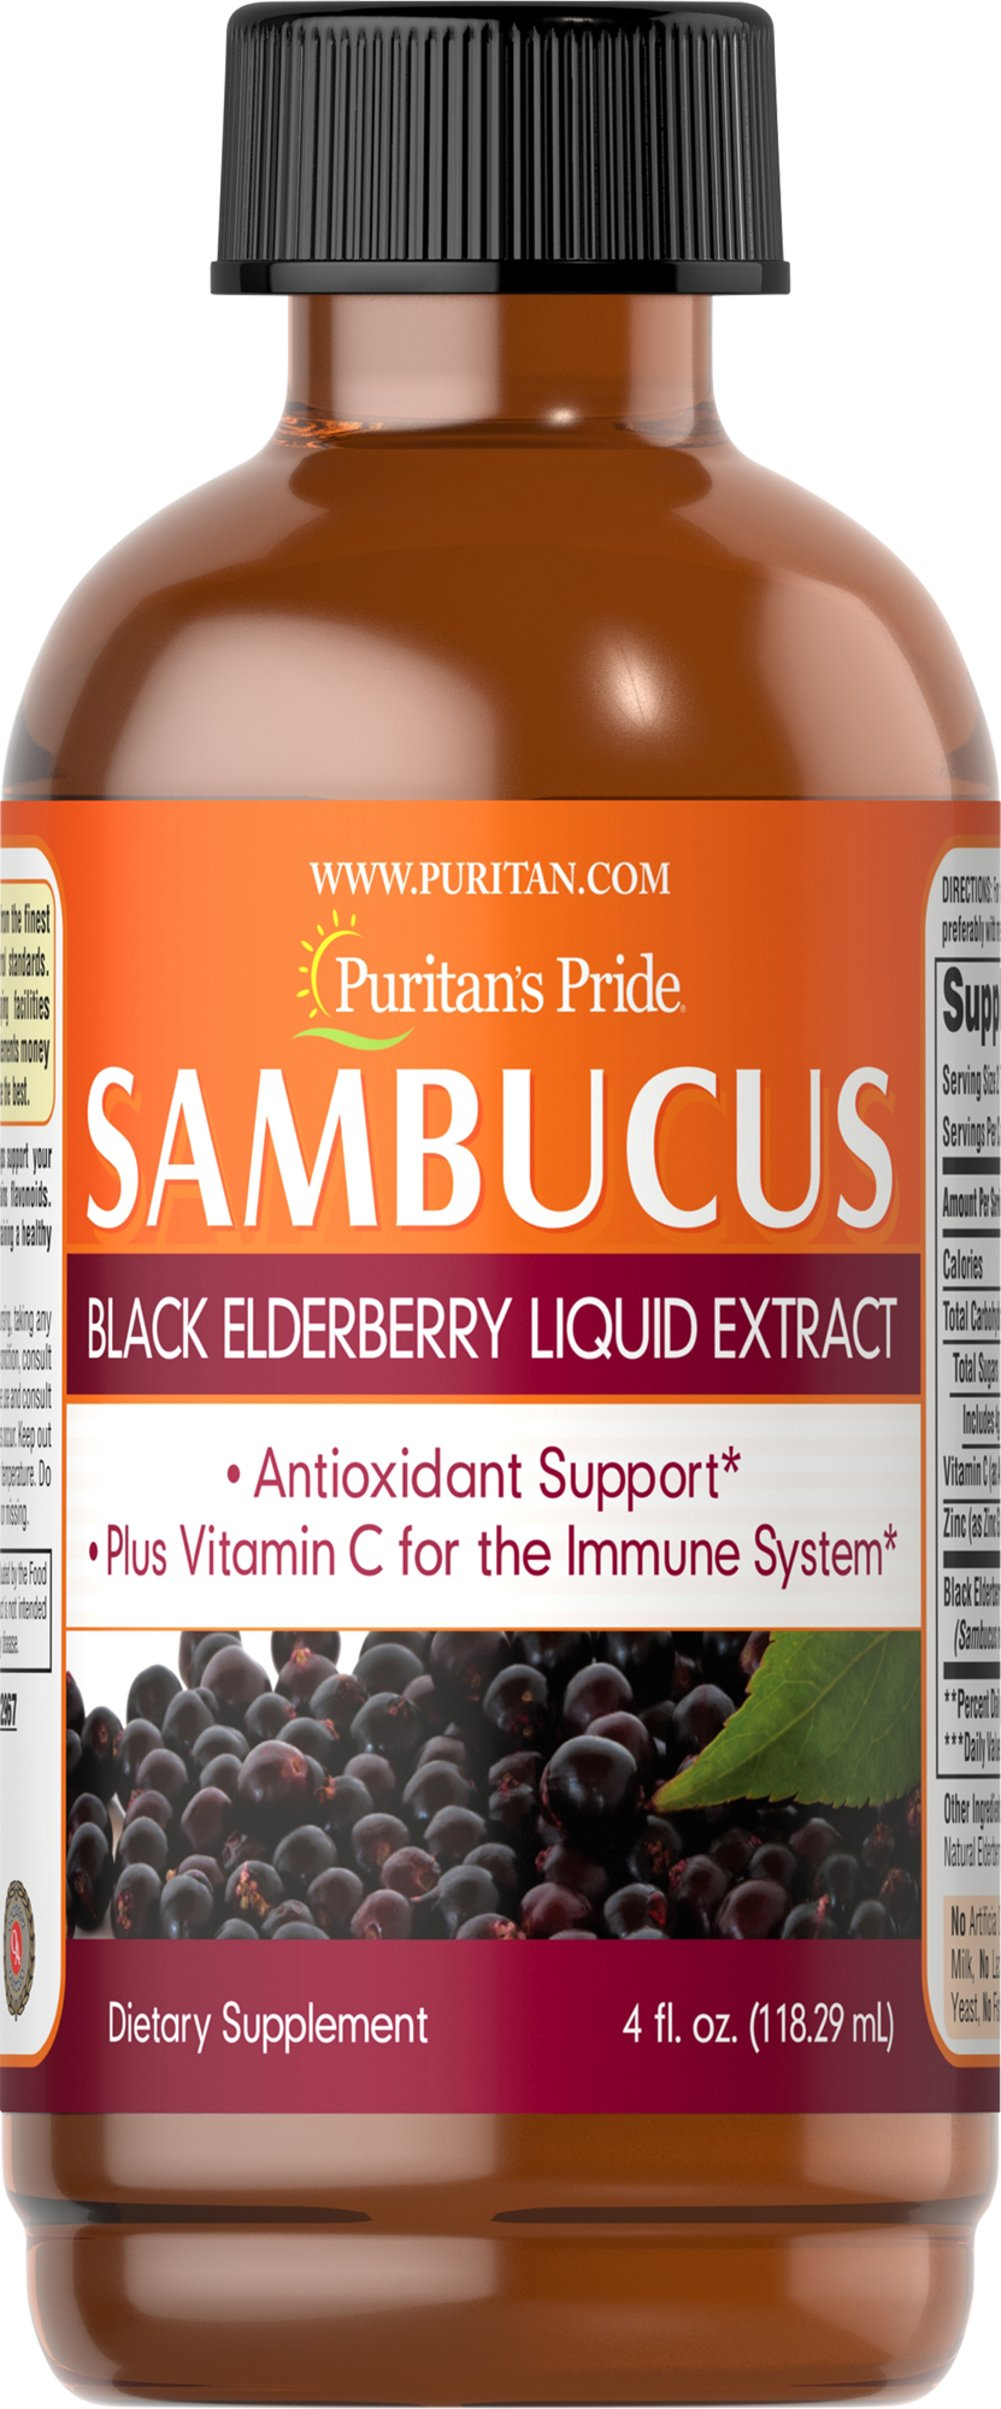 Sambucus Black Elderberry Liquid Extract <p>Antioxidant Support**</p><p>Plus vitamin C for the Immune System**</p><p>Taken every day, Sambucus helps support your overall health and wellness.**  Elderberry contains flavonoids for antioxidant support.**  Vitamin C and Zinc play an important role in maintaining a healthy immune system.**</p> 4 oz Liquid  $14.99